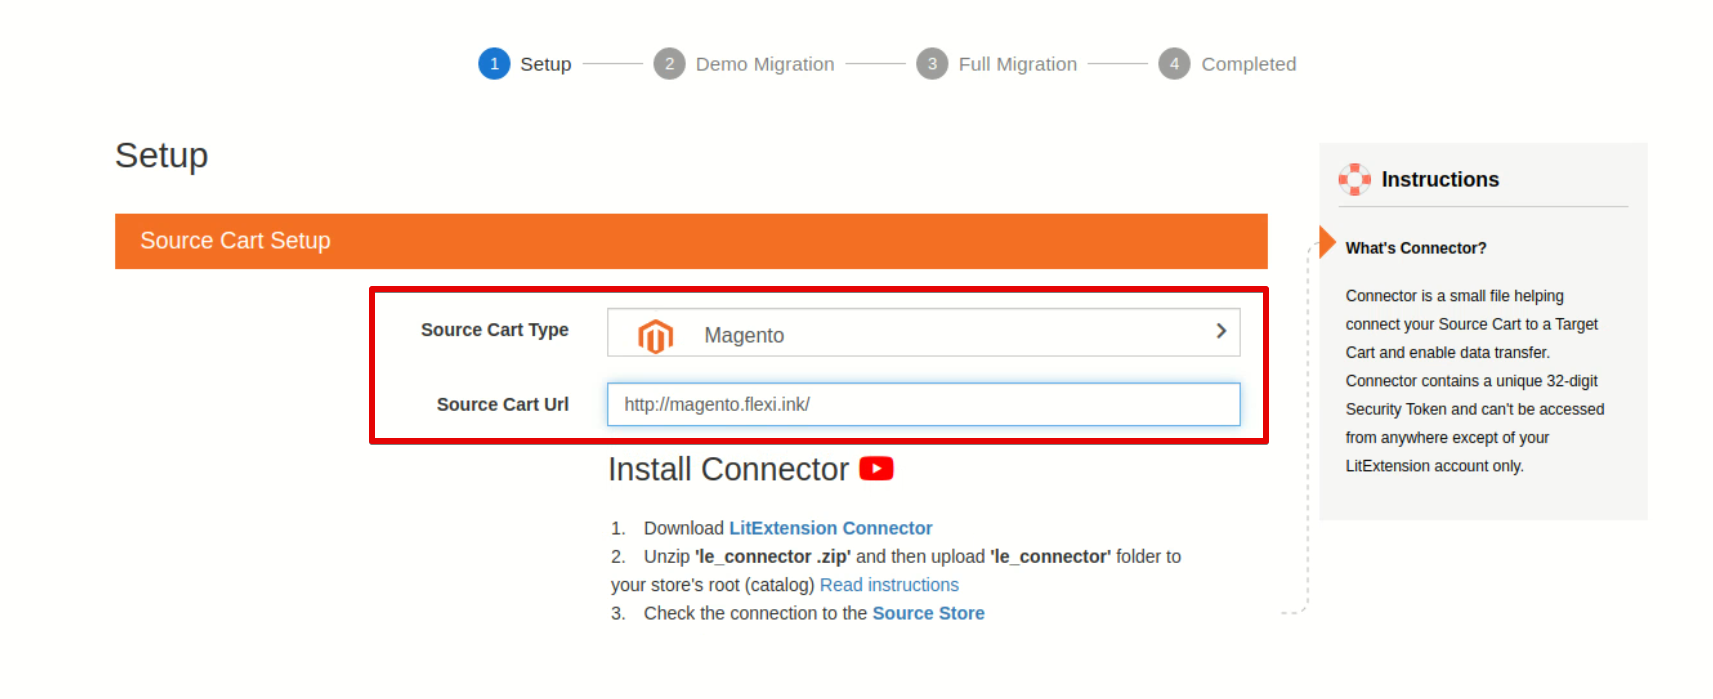 Choose Magento in the Source Cart Type field